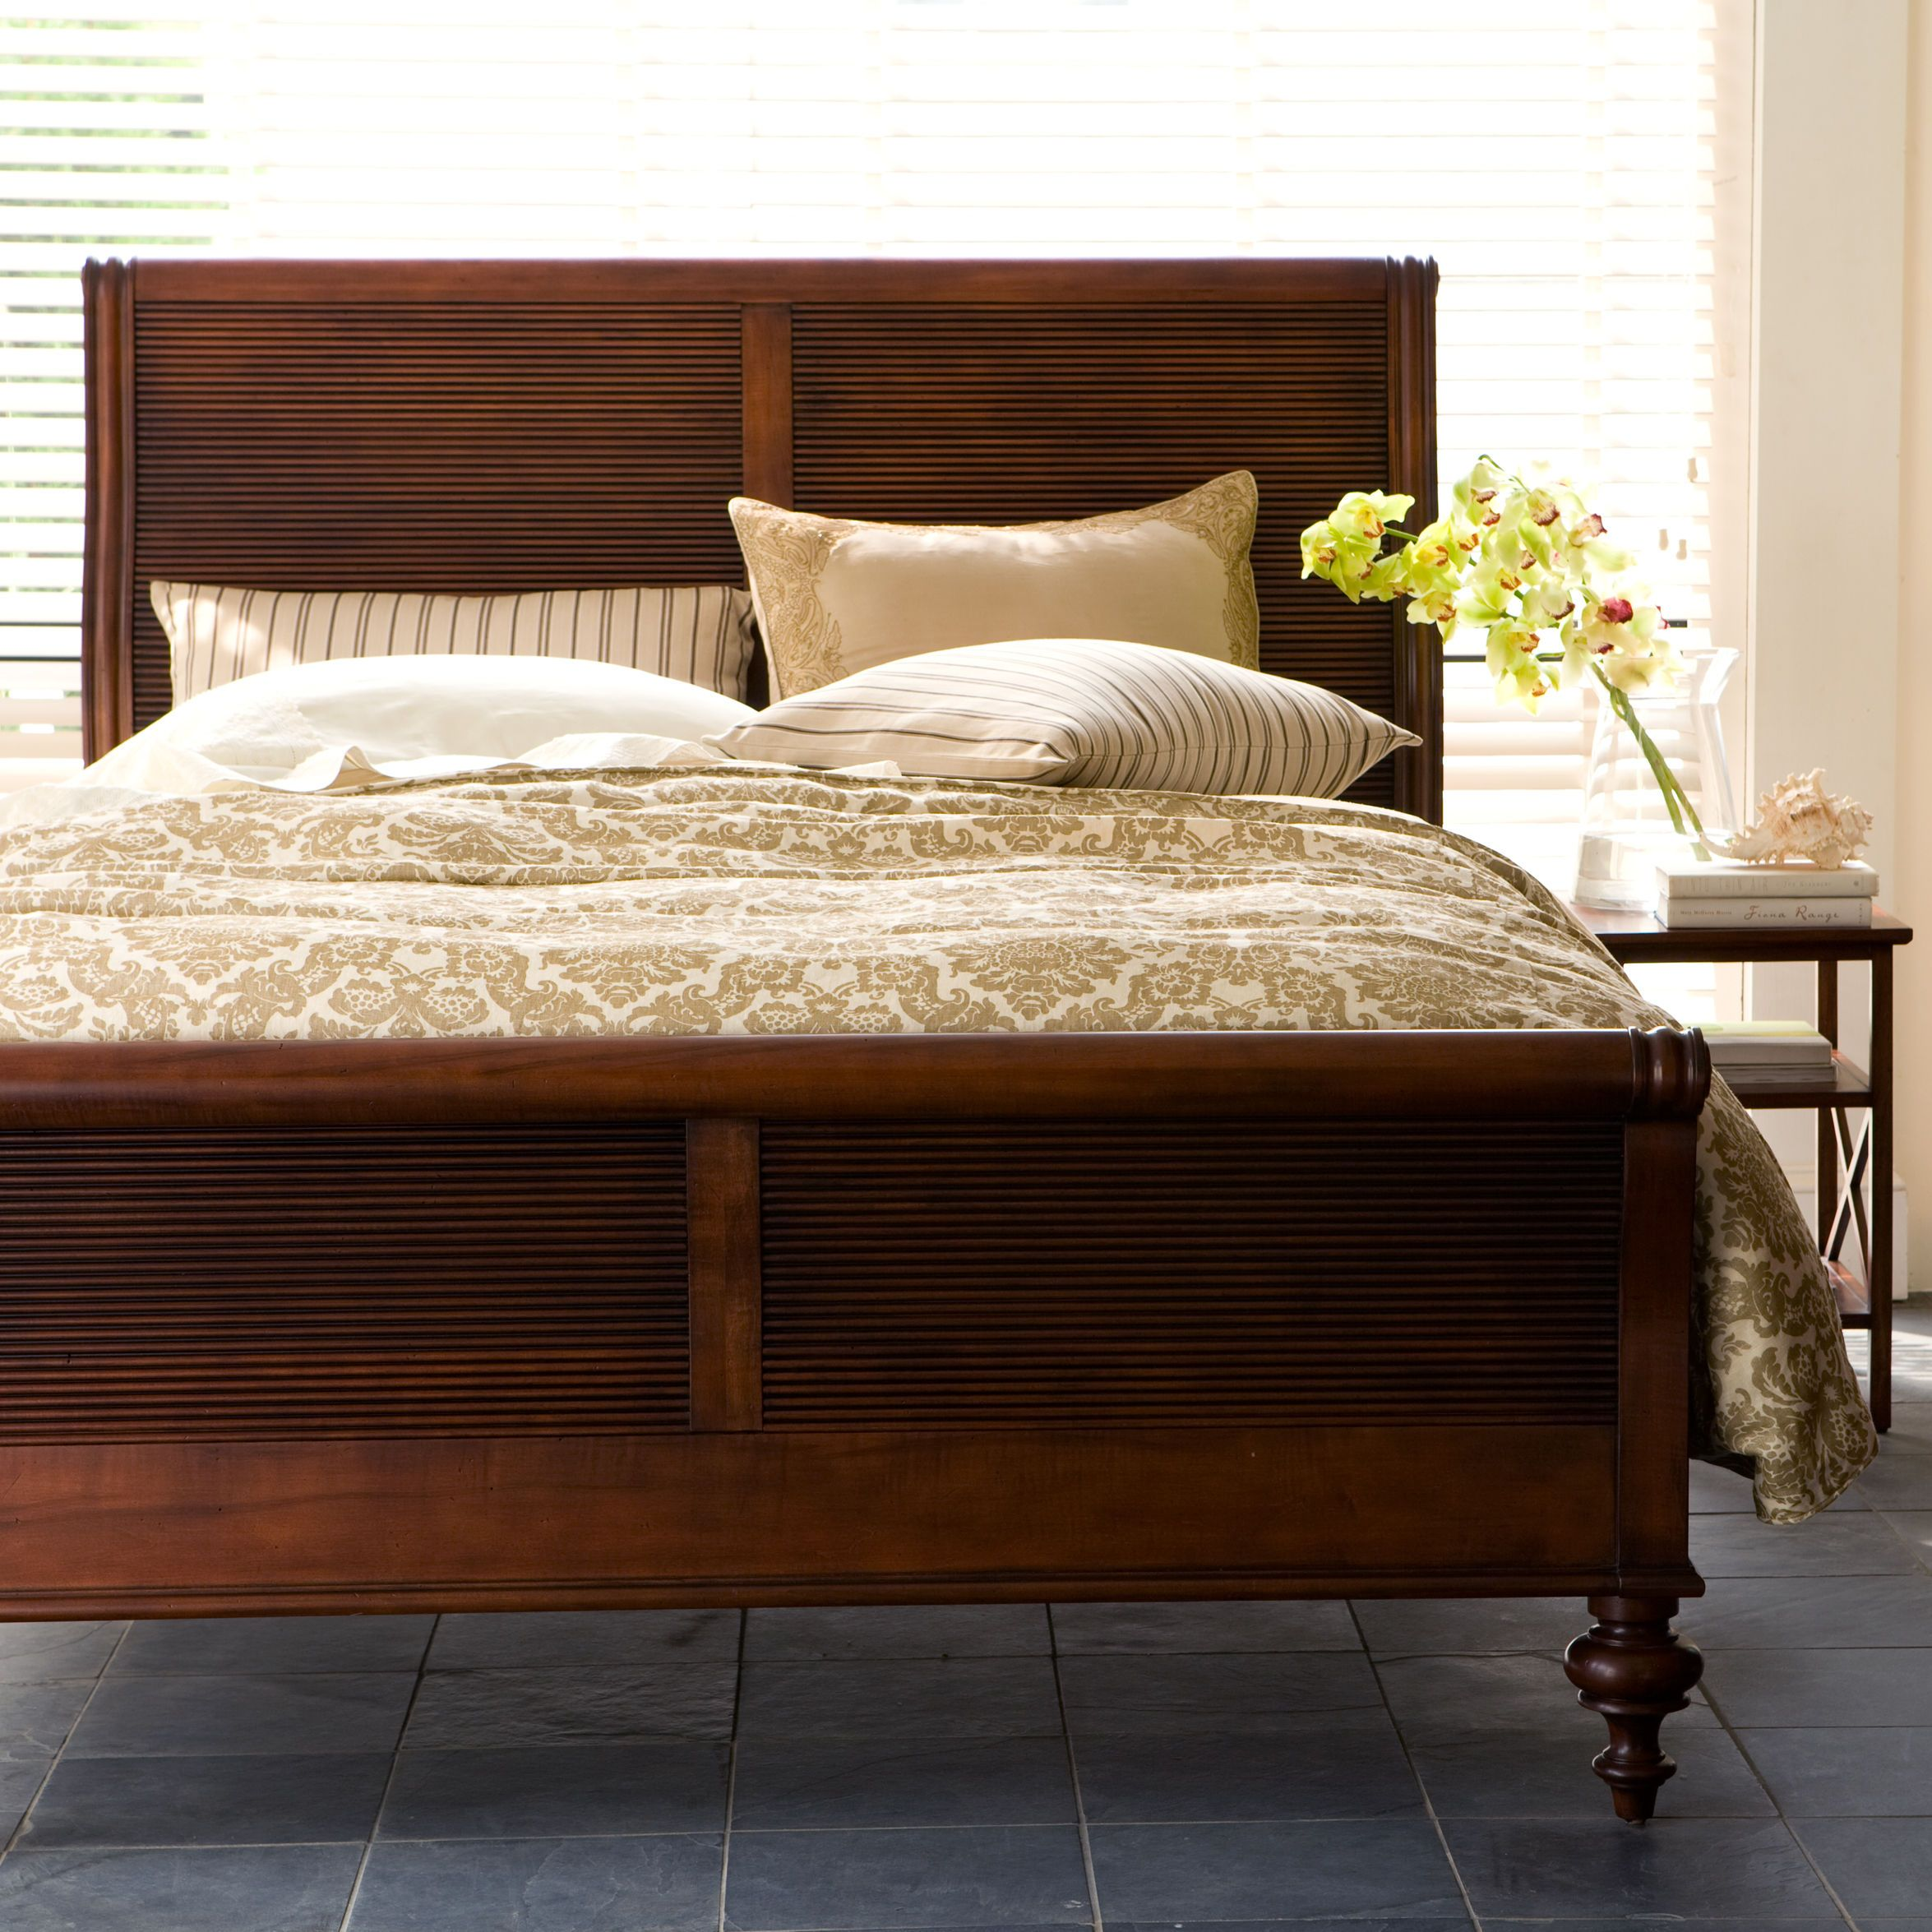 Bedroom Sets Ethan Allen kingston bed - ethan allen us; $1529 (multiple finishes available